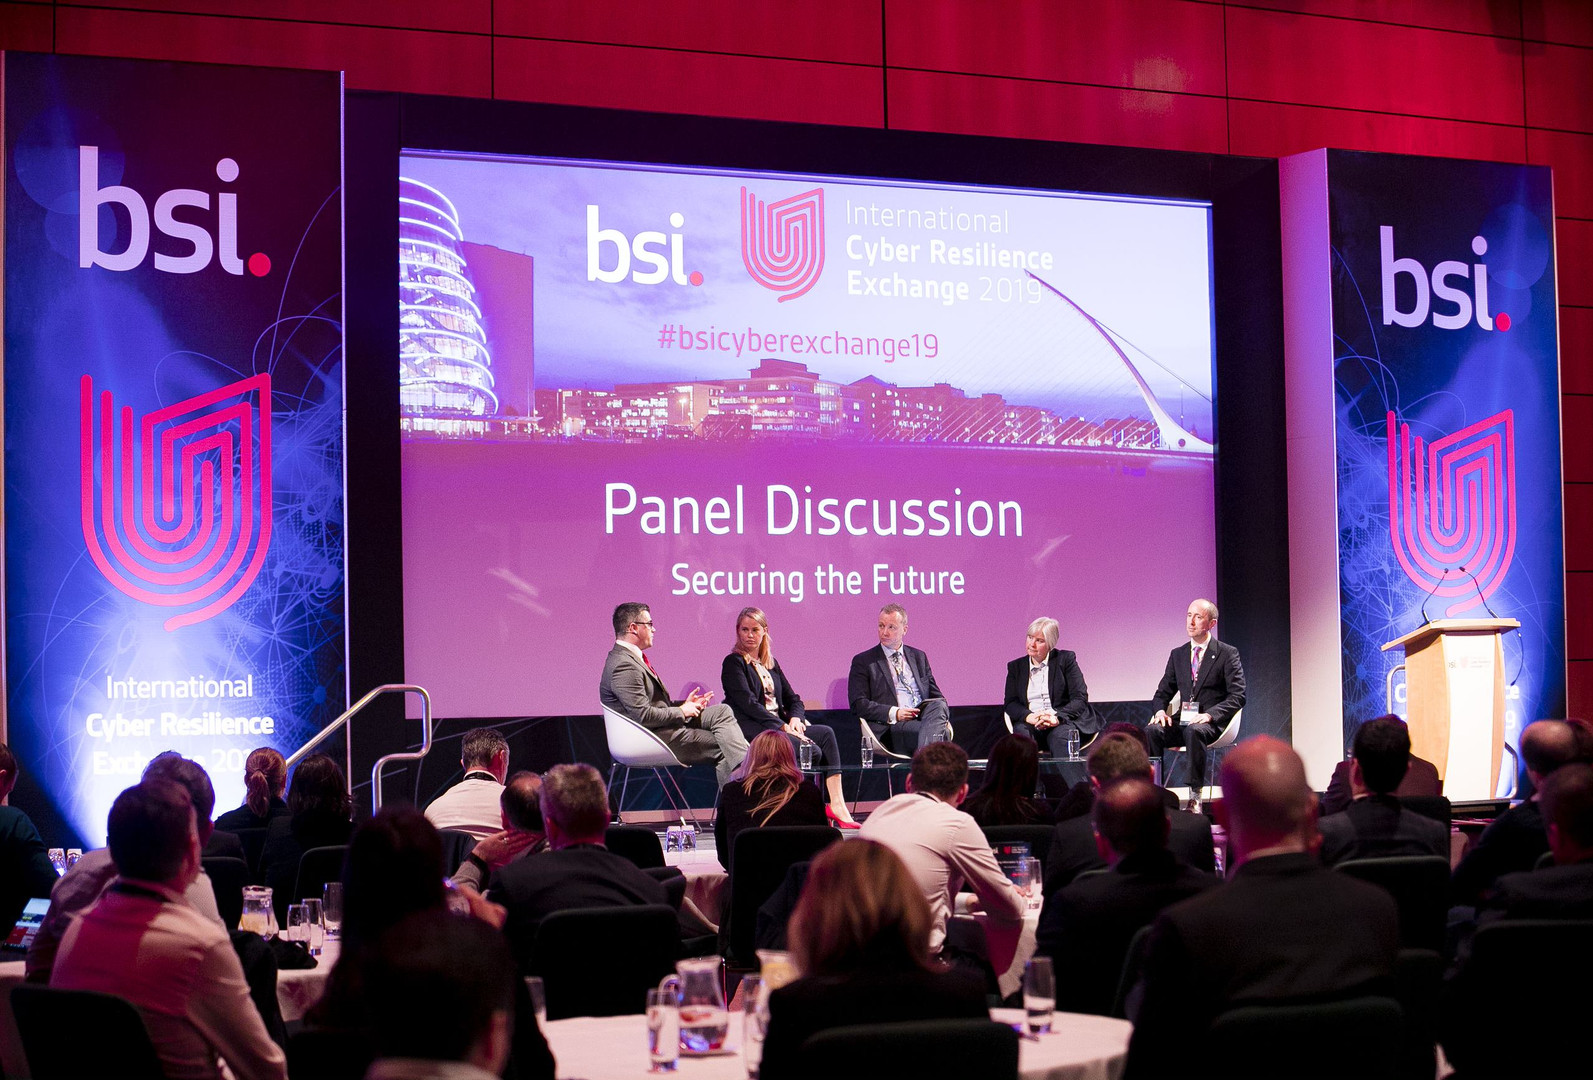 BSI European Cyber Resilience Exchange 2019 (26th March 2019)